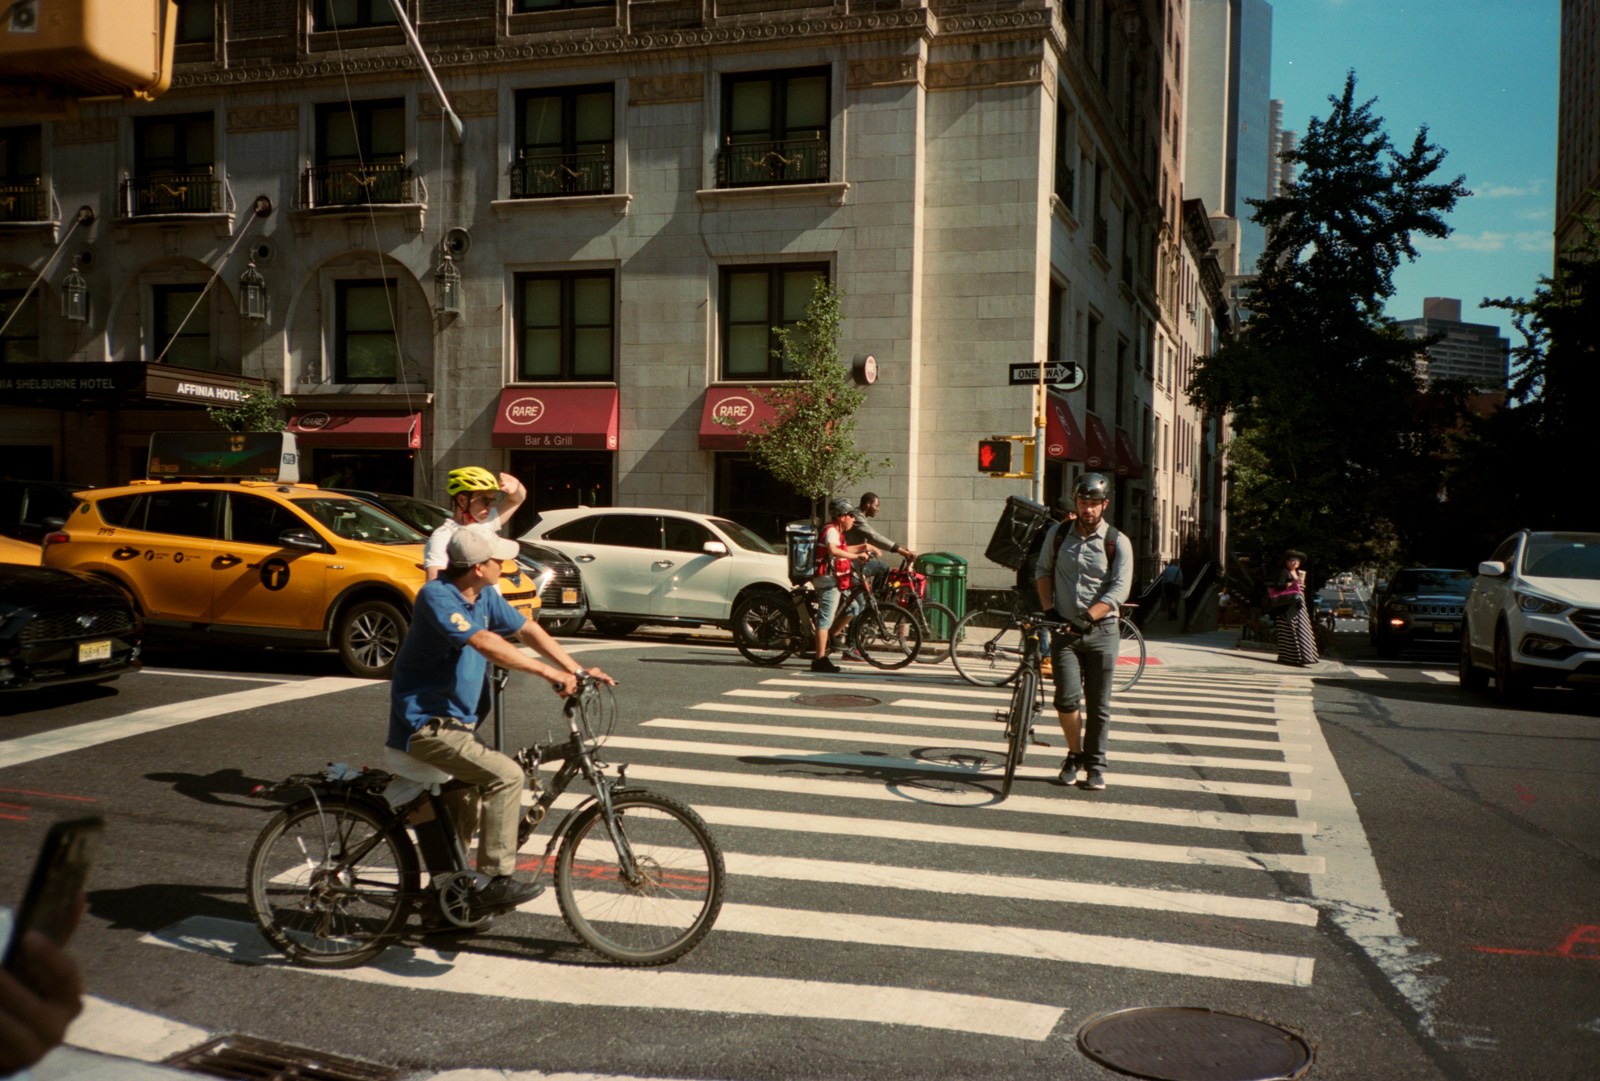 Crossing coming traffic, Upper East Side, New York. Lonely New York Series. Photography By Ioannis Koussertari.